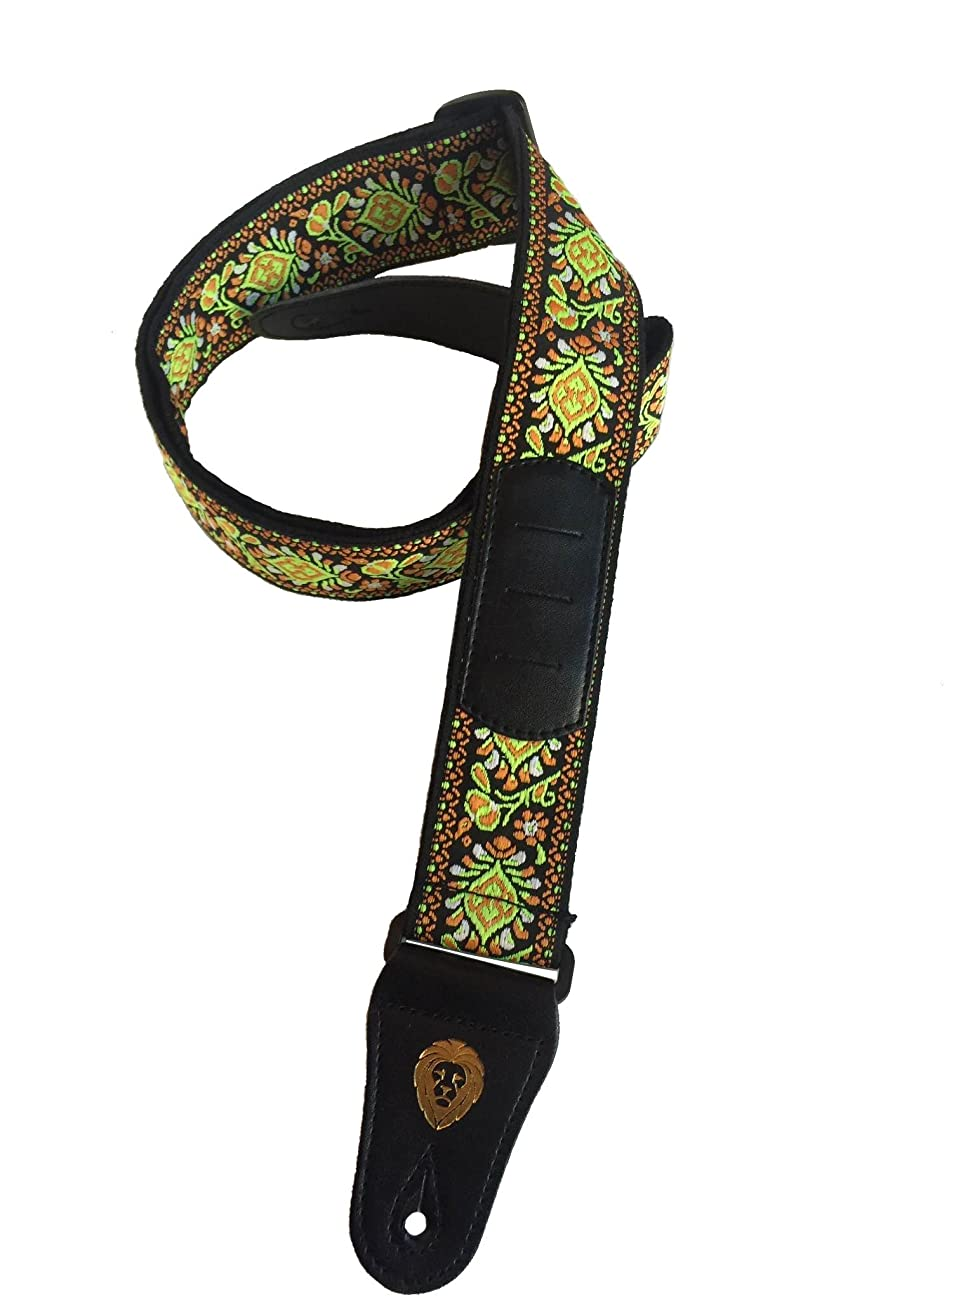 Golden Lion's 60's Jacquard Vintage Guitar Strap with Newly Designed Pick Pocket! 1